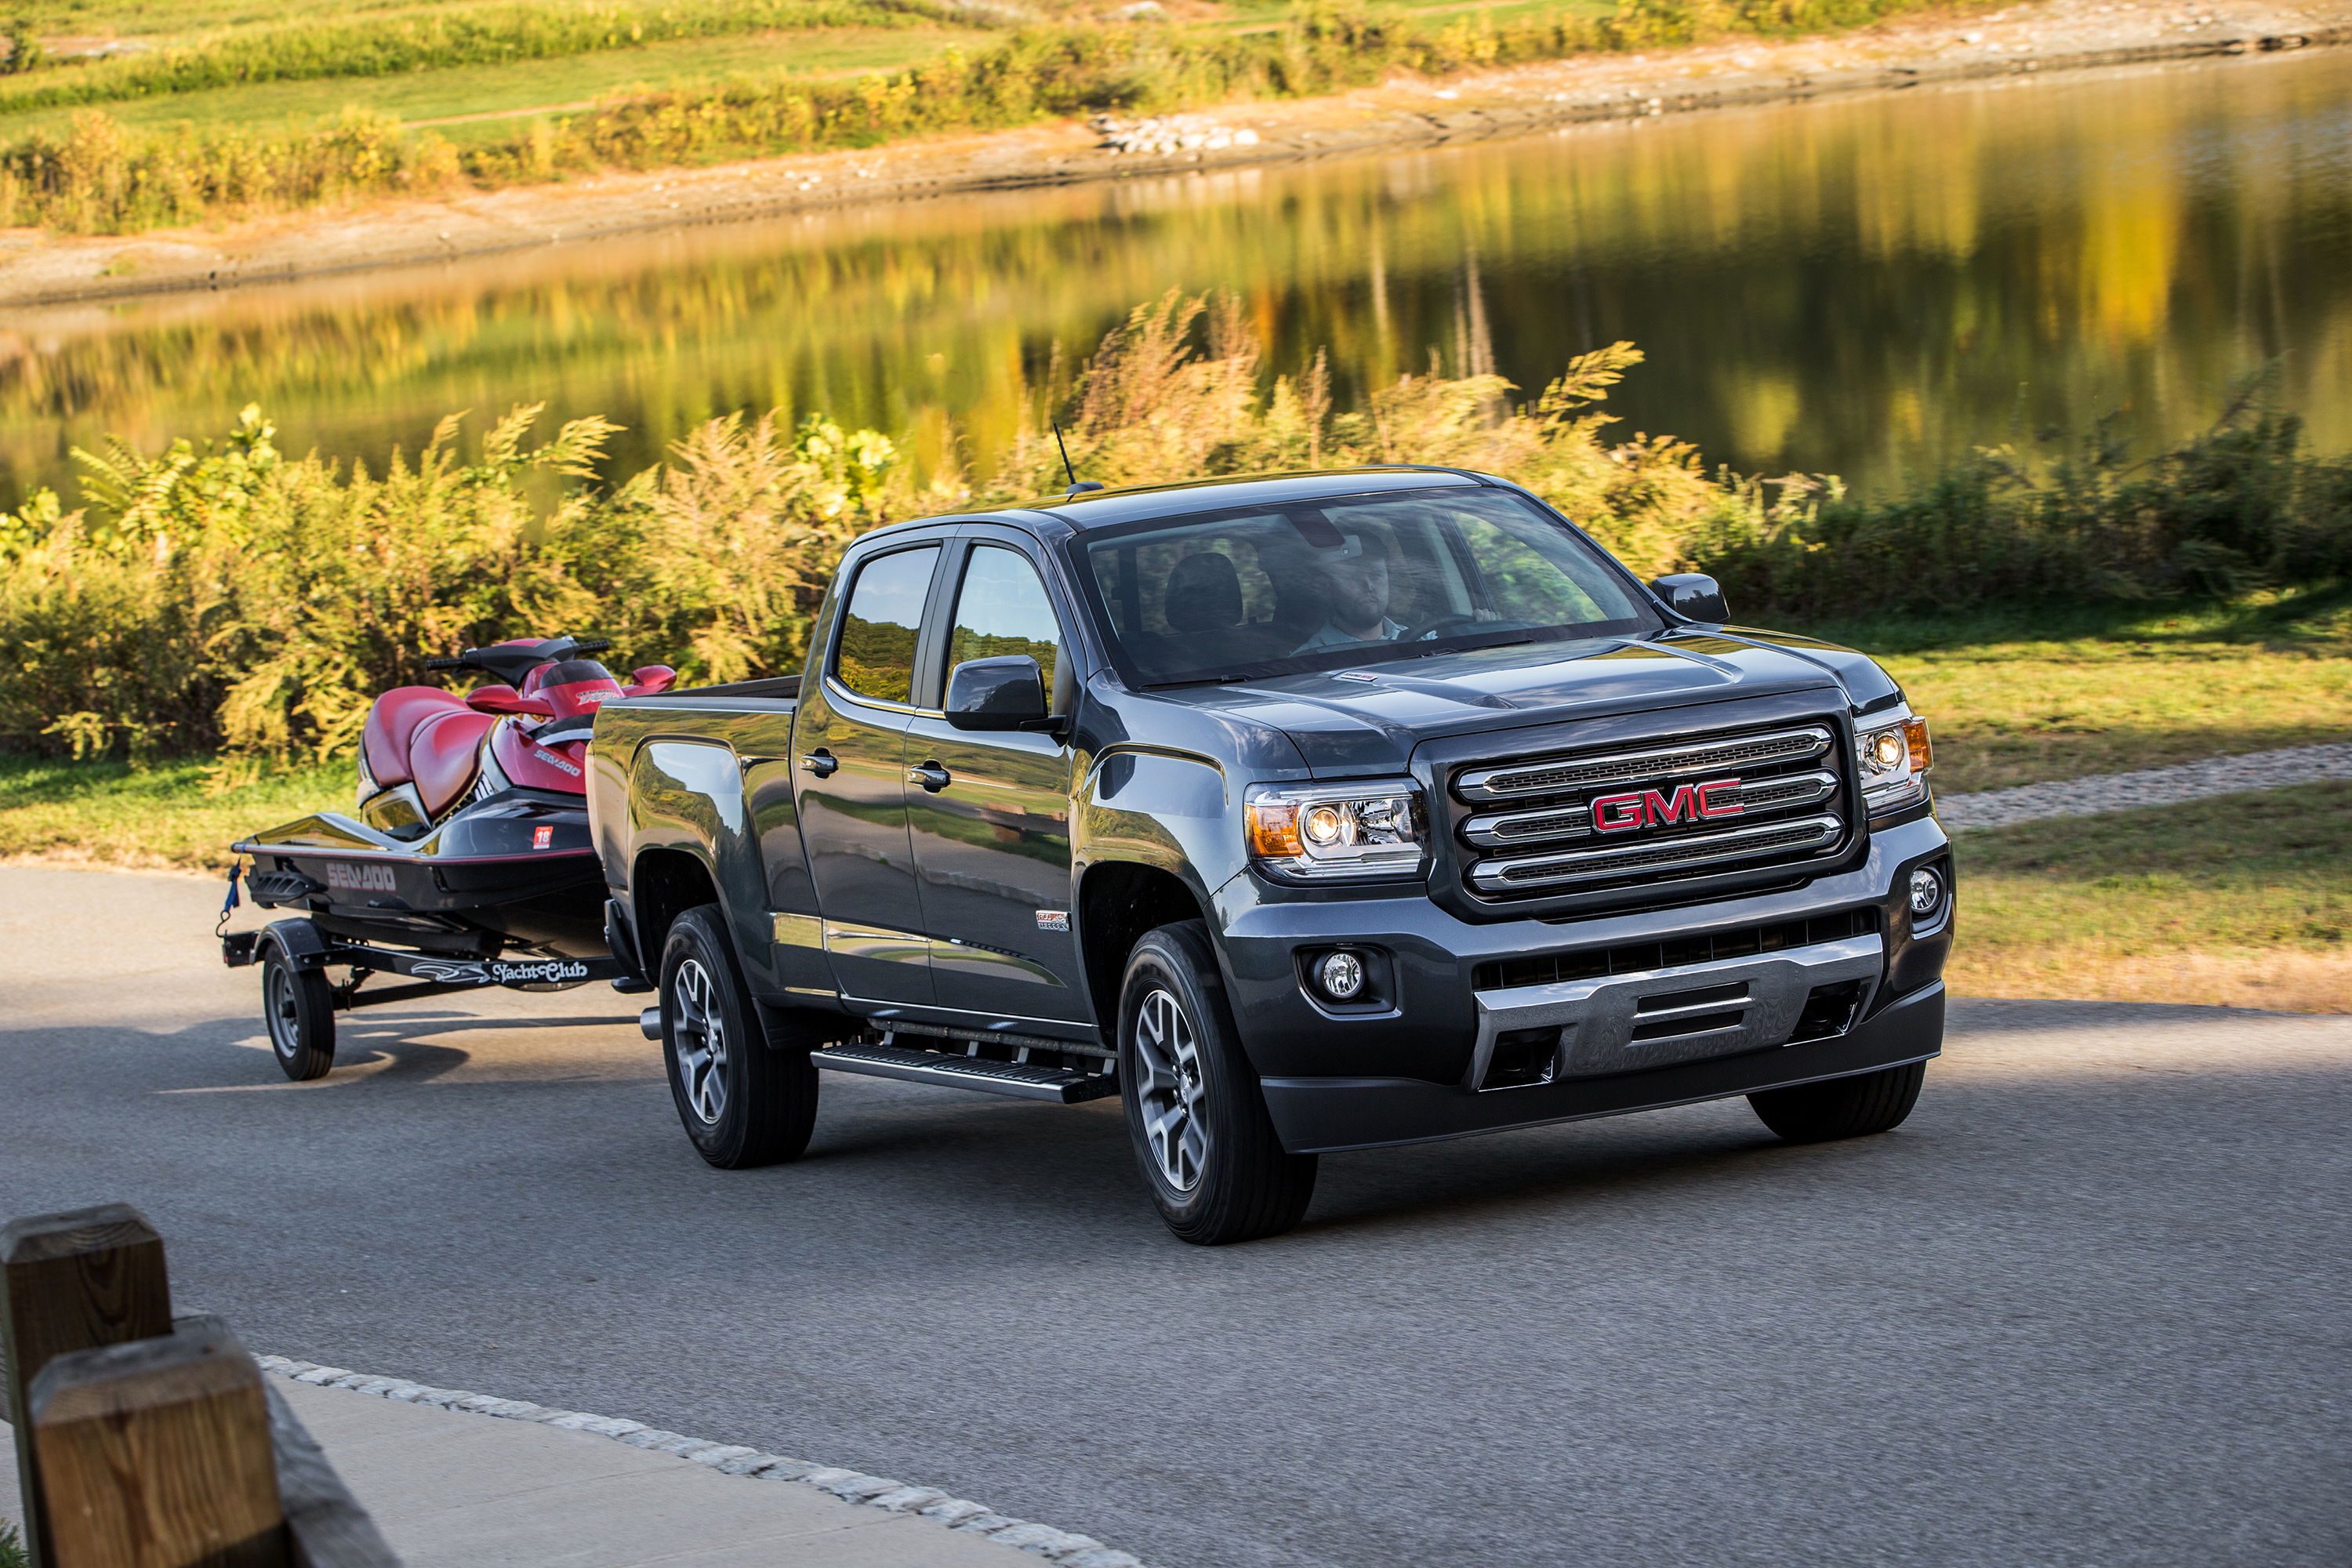 GM's mid-size truck gambit pays off in performance | Ars Technica